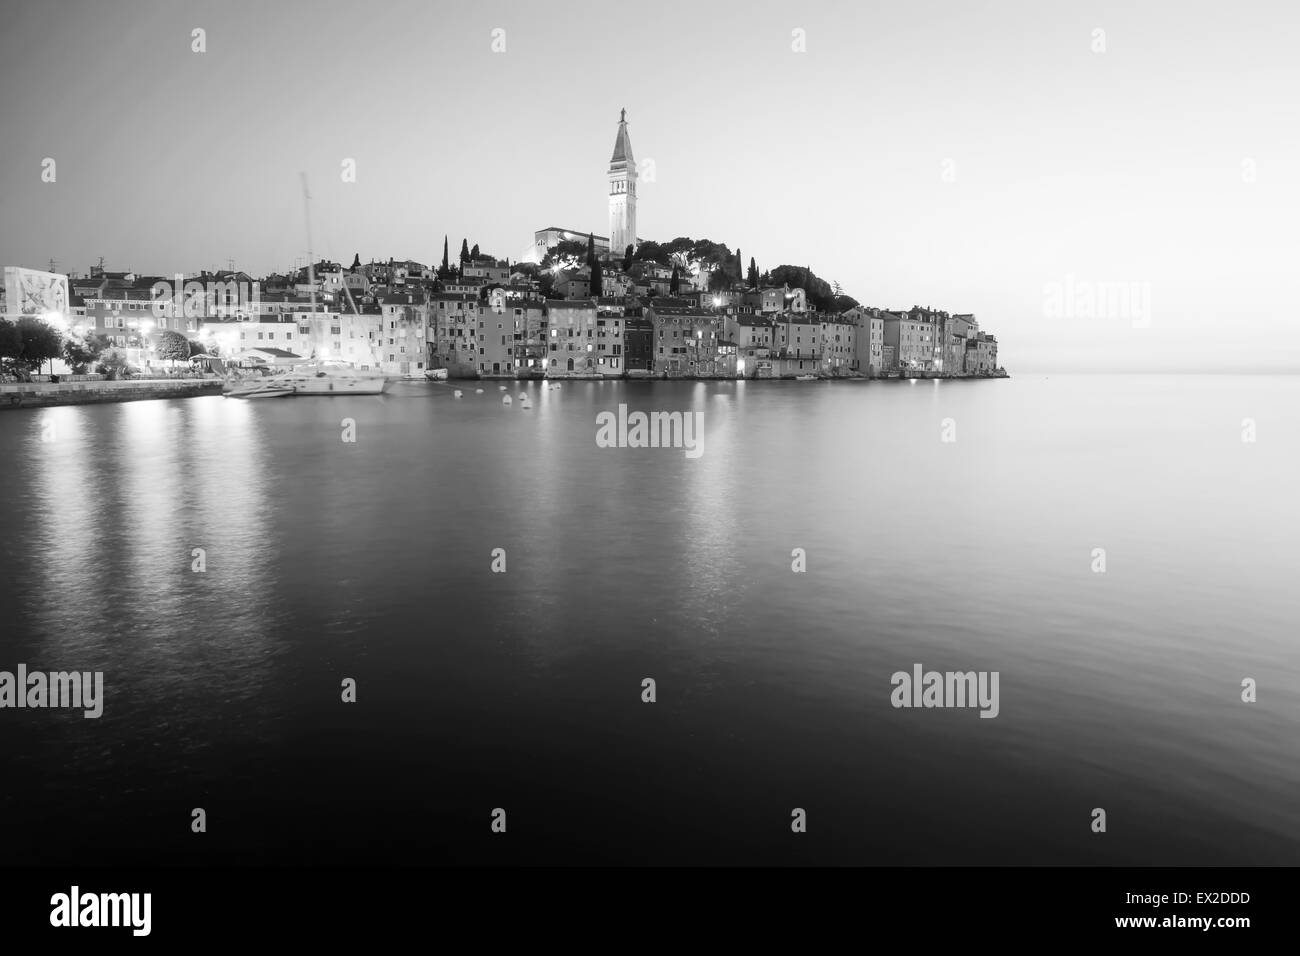 A view of the old city core with the Saint Euphemia church and bell tower at sunset in Rovinj, Croatia. - Stock Image